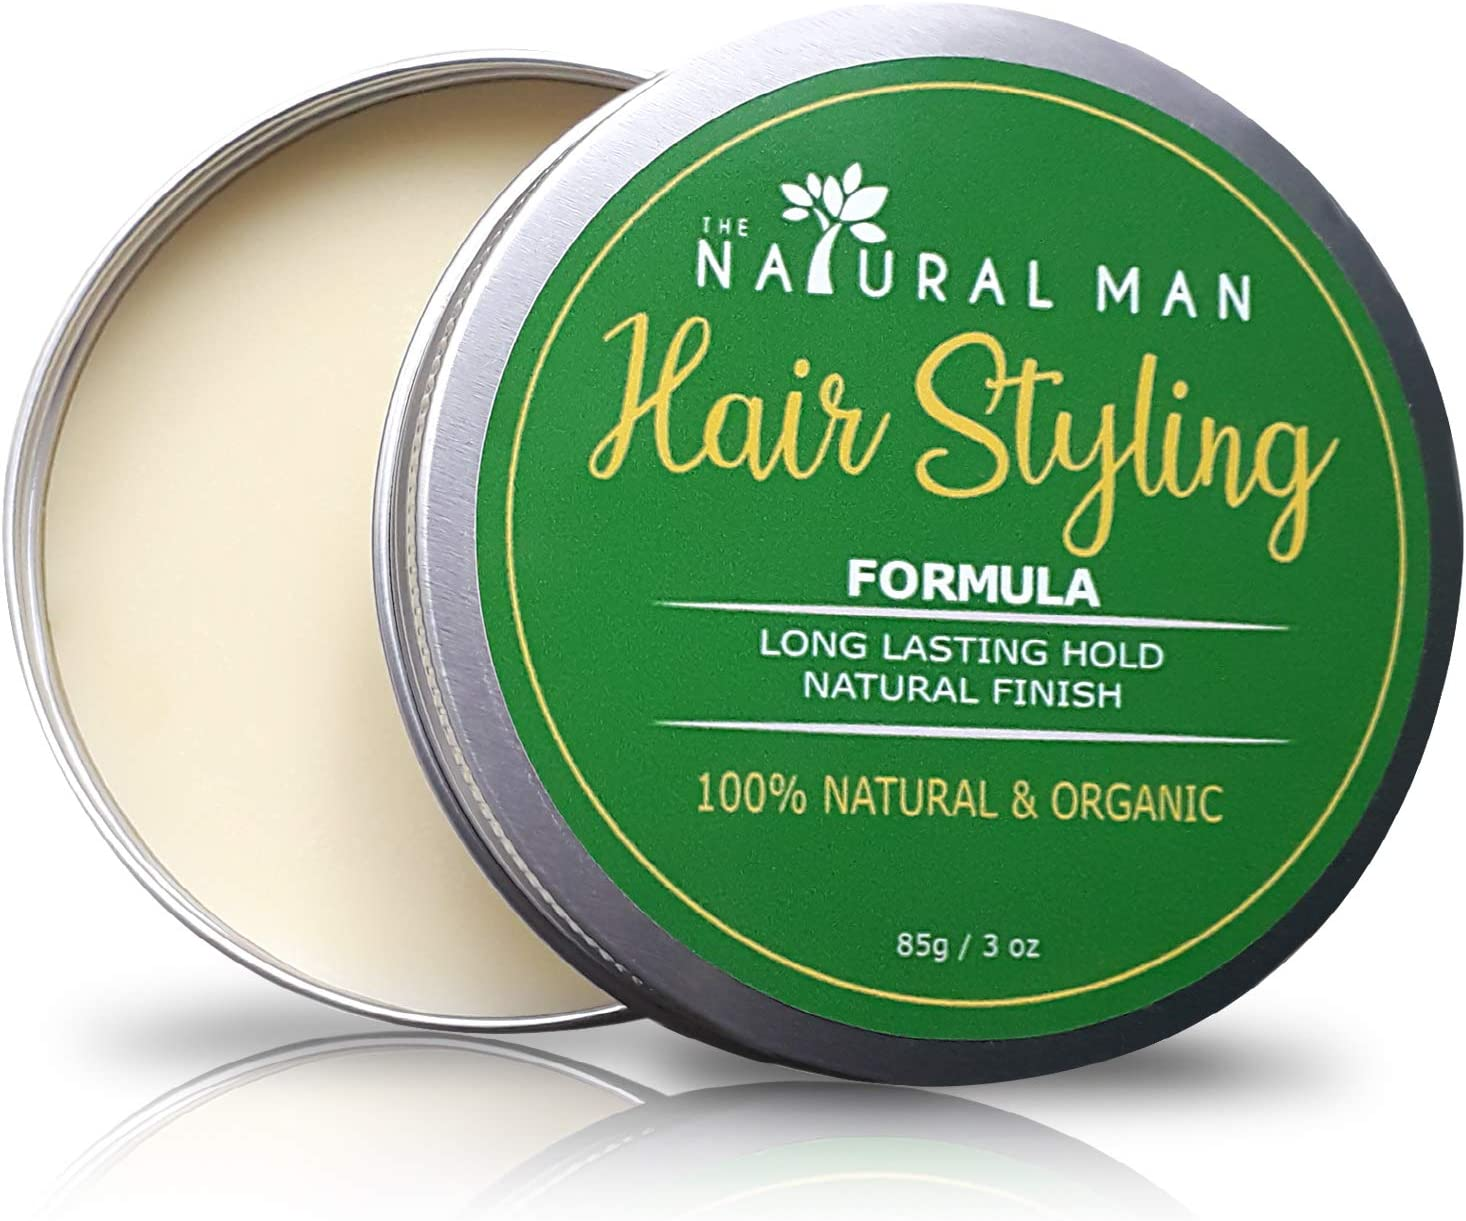 Hair Wax For Men 100 Natural Mens Hair Pomade Medium Hold For Short And Long Hair Handcrafted And Organic By The Natural Man 85g 3oz Amazon Co Uk Beauty